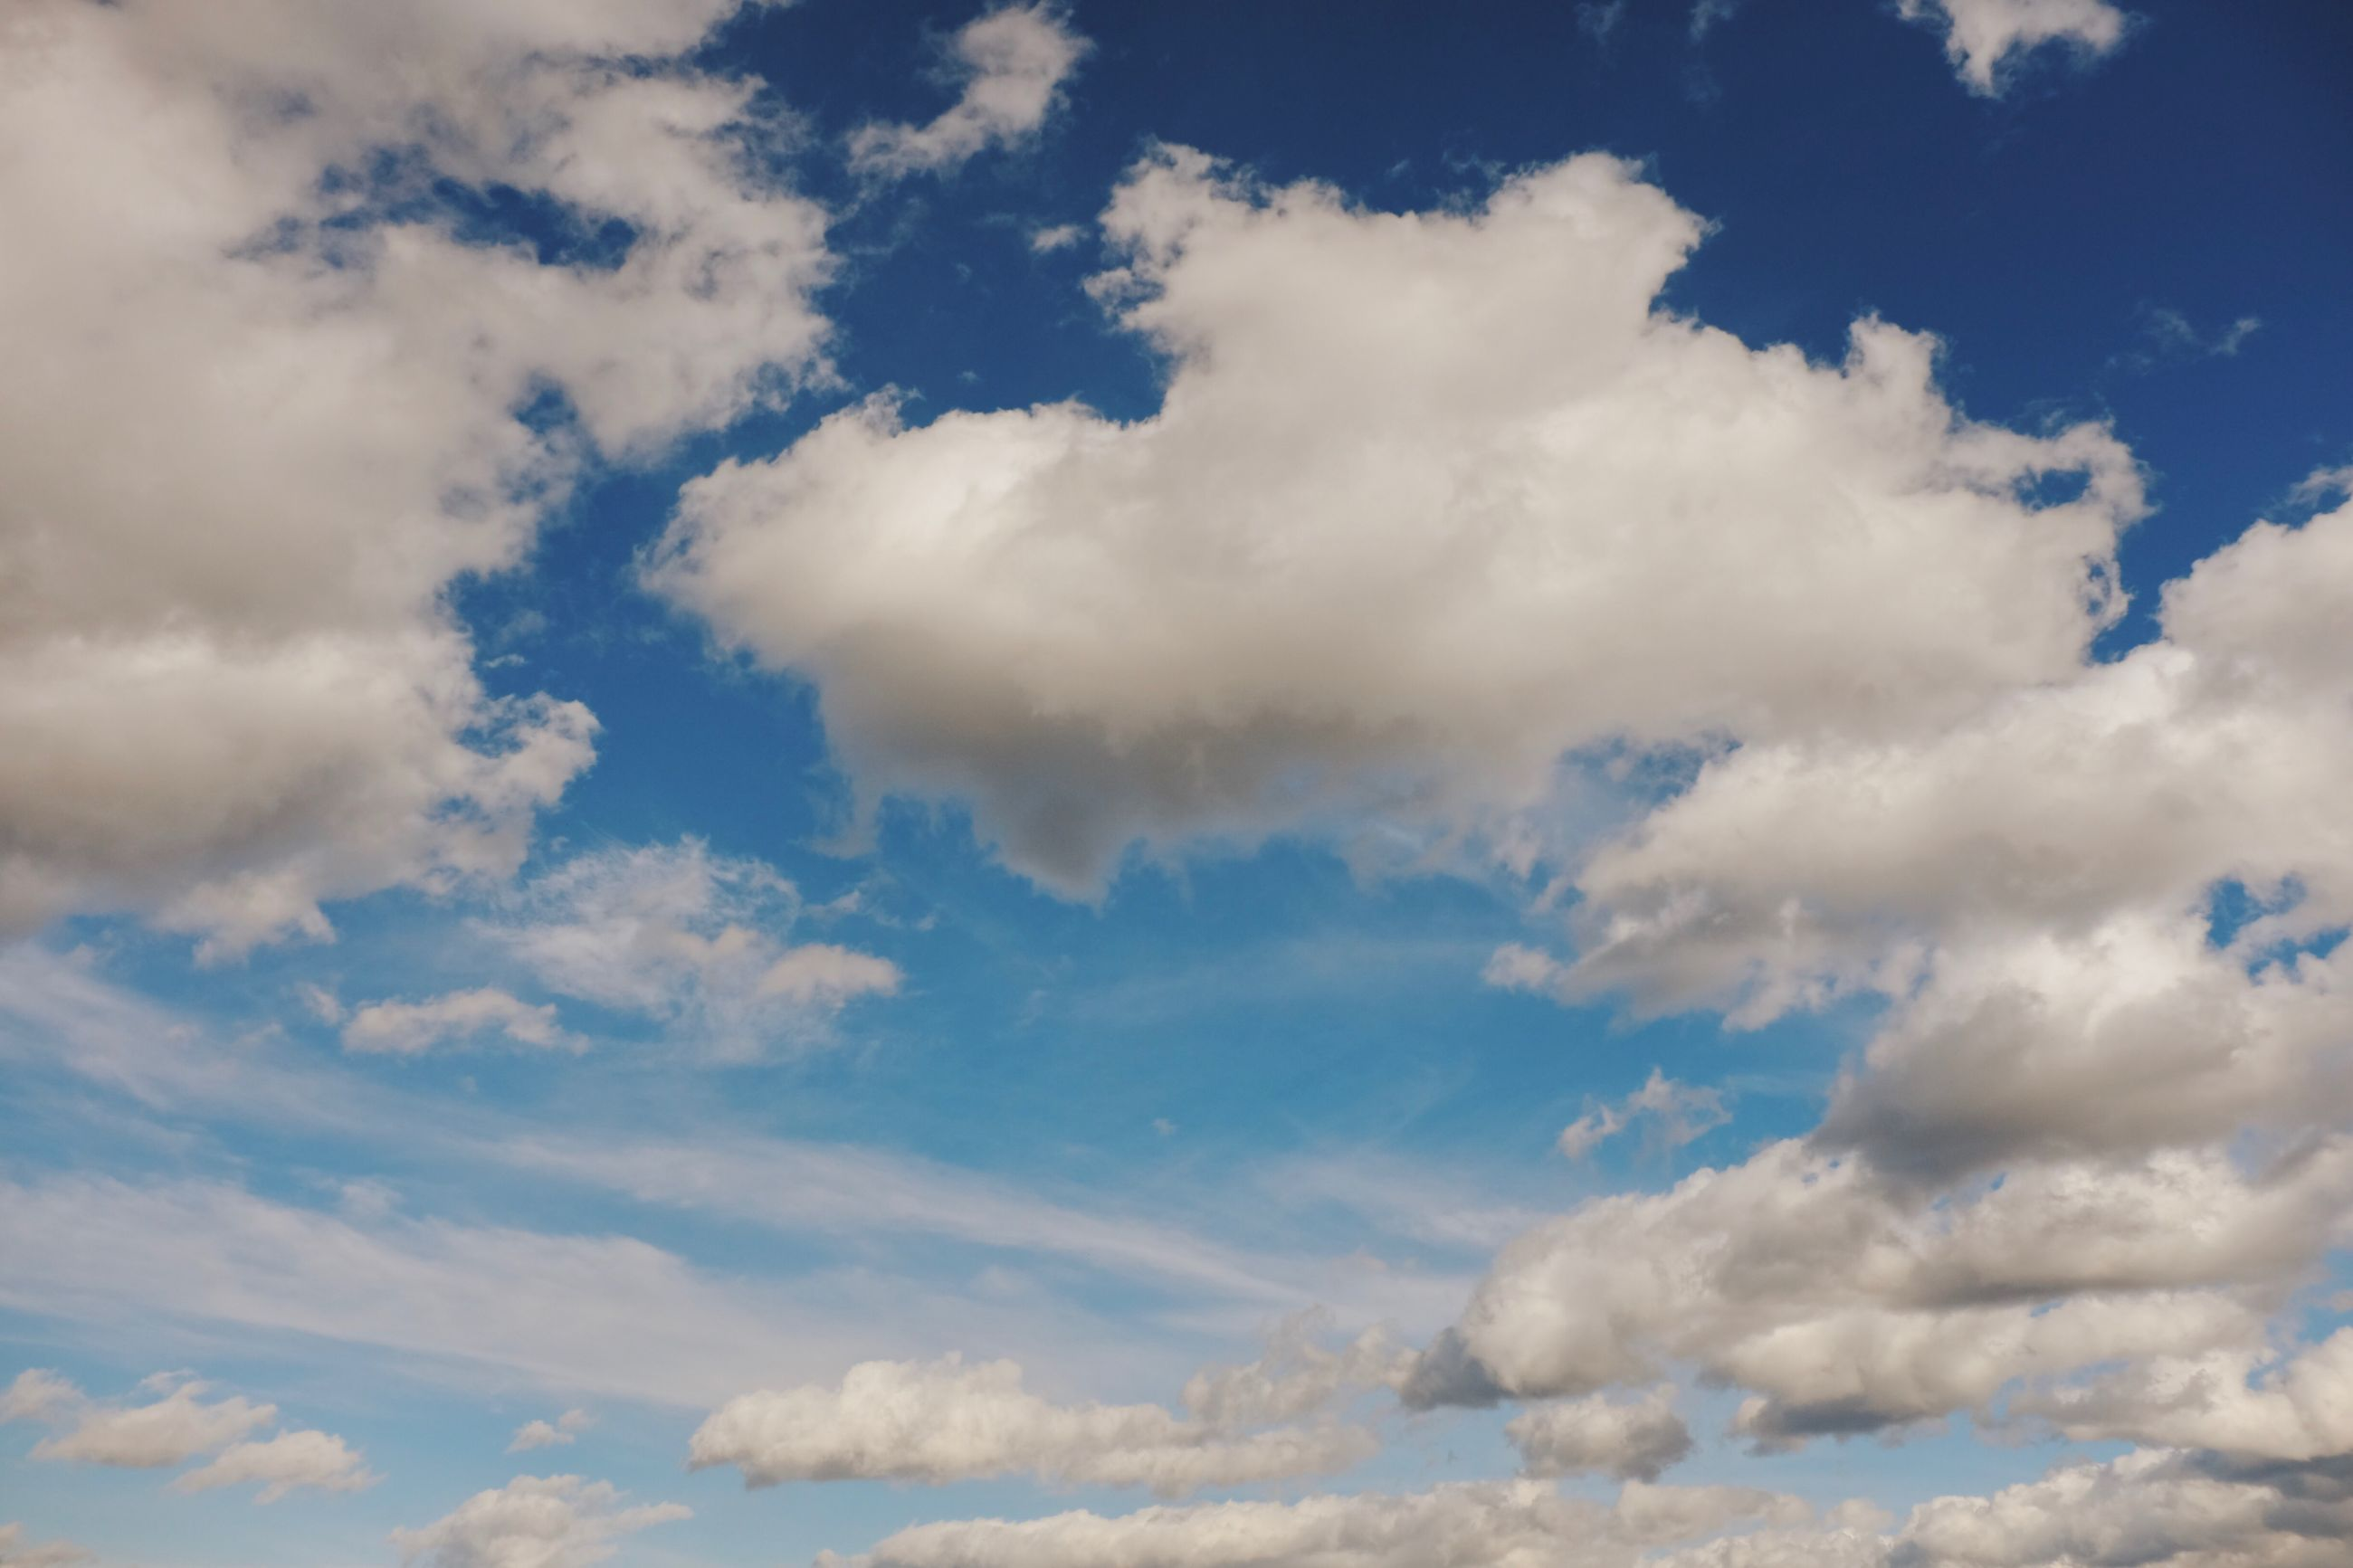 cloud - sky, sky, beauty in nature, low angle view, scenics - nature, tranquility, no people, tranquil scene, nature, day, blue, white color, idyllic, outdoors, backgrounds, full frame, cloudscape, fluffy, non-urban scene, meteorology